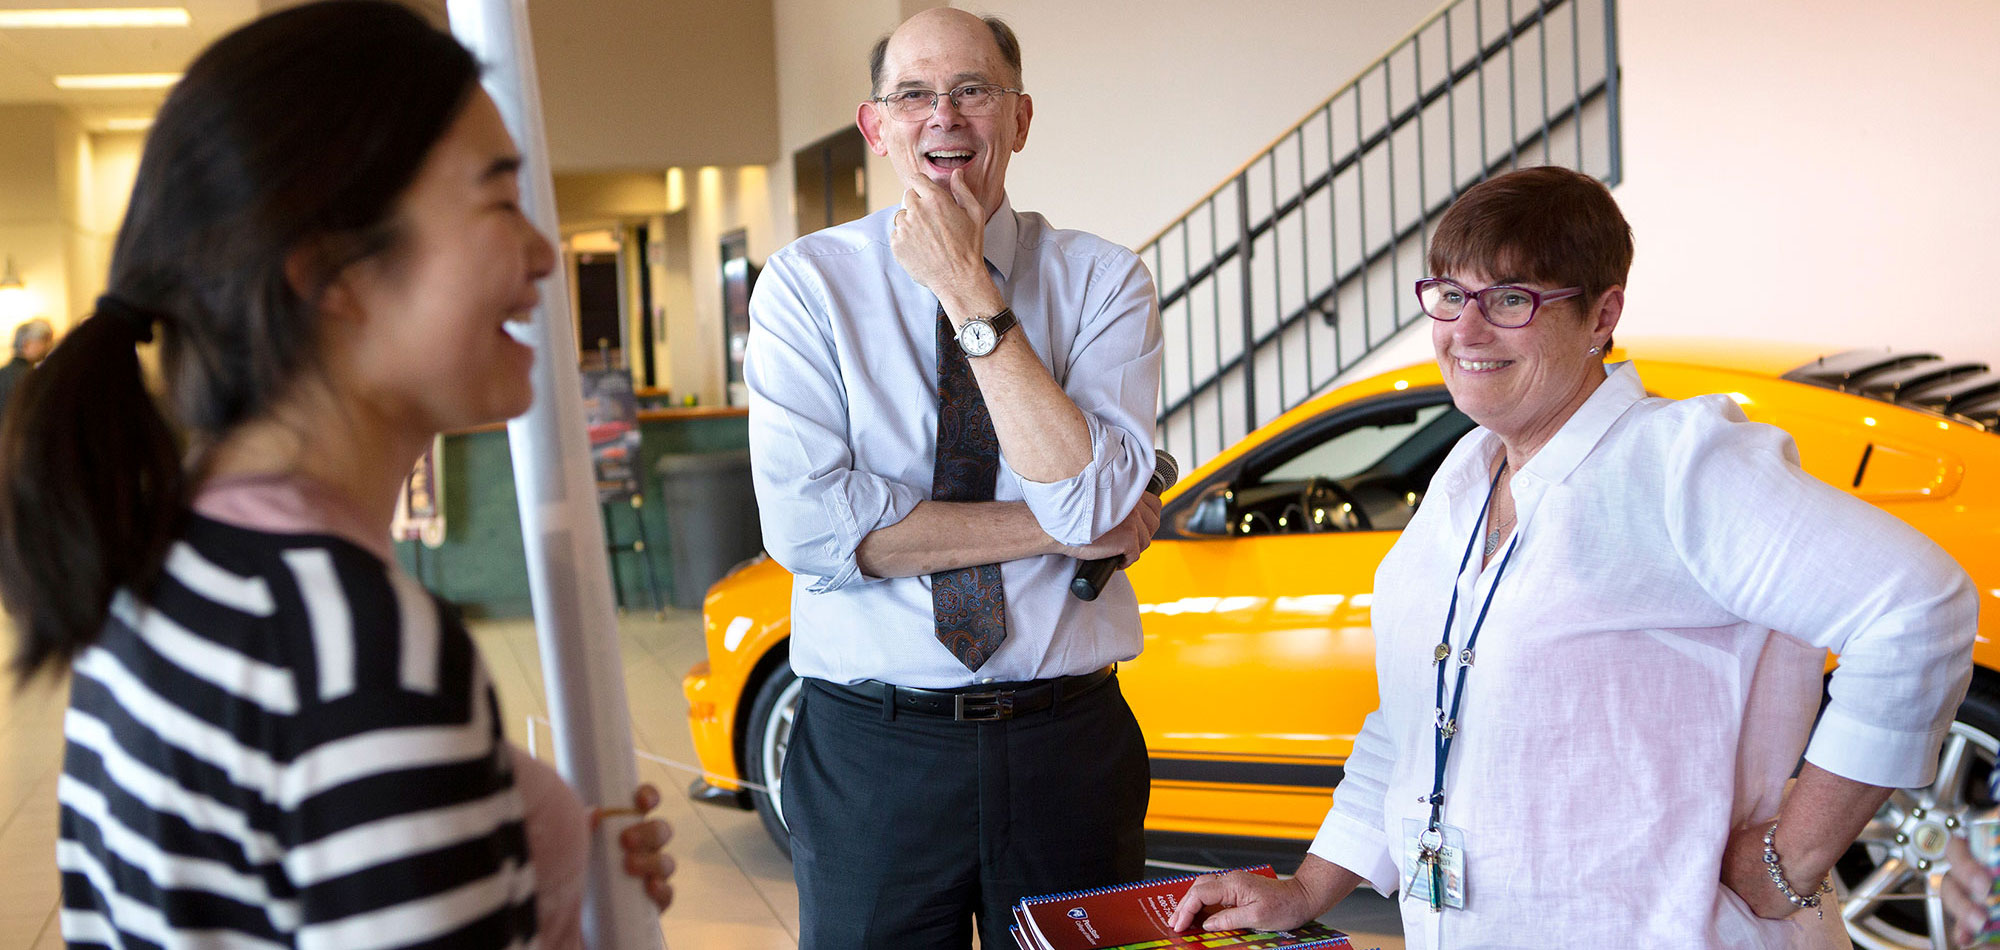 A graduate student is seen laughing with Dr. Charles Lang, Associate Dean for Graduate Education, center, and Kathy Simon, Director of Graduate Education, right, at the 2018 Faculty and Student Research Retreat. The three are pictured standing in front of a car in a museum.